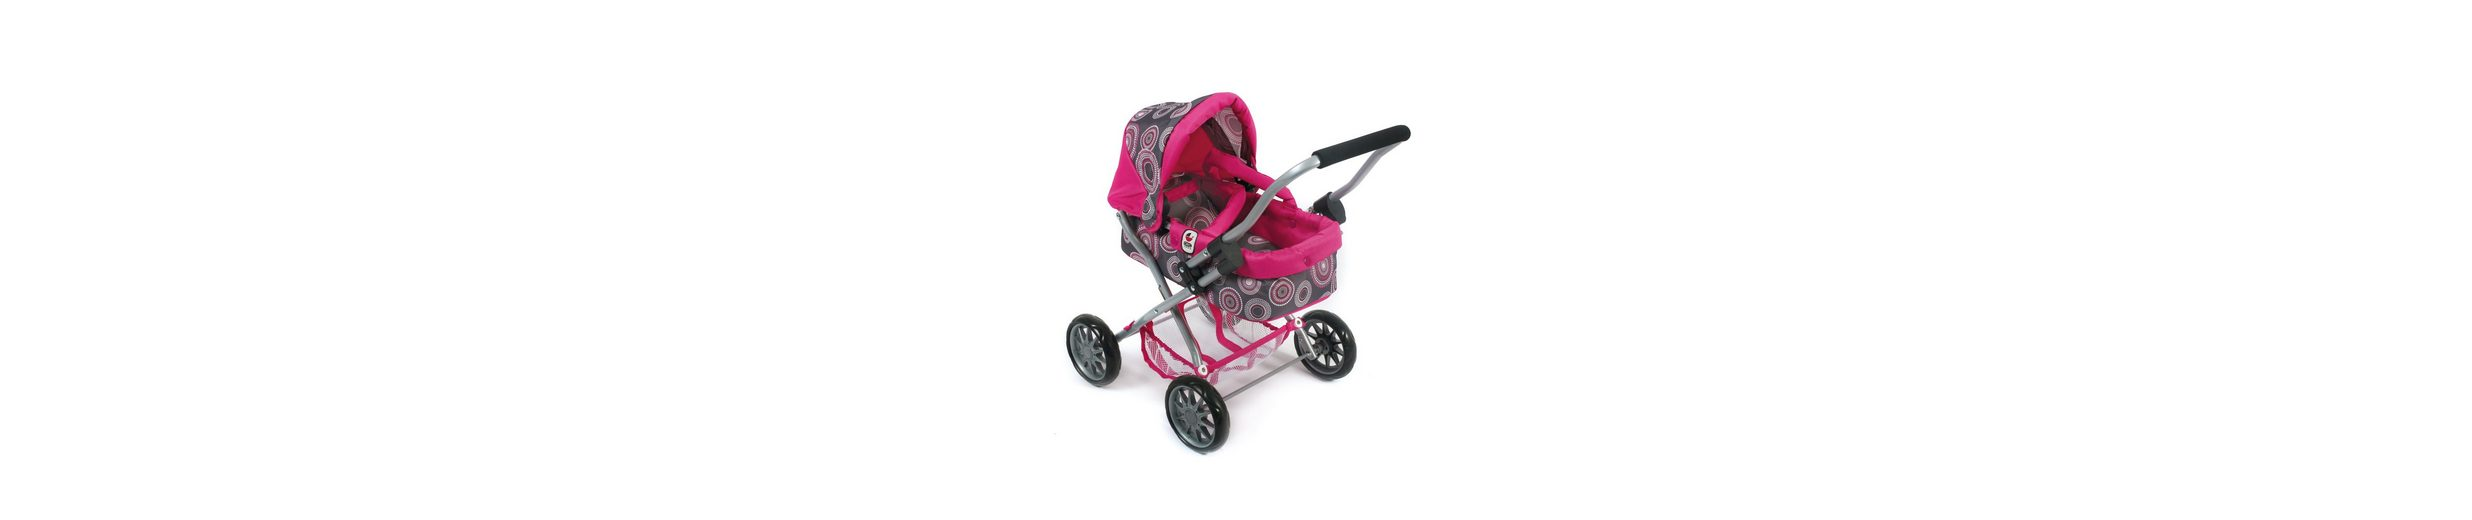 CHIC2000, Puppenwagen »Smarty, Hot pink pearls«